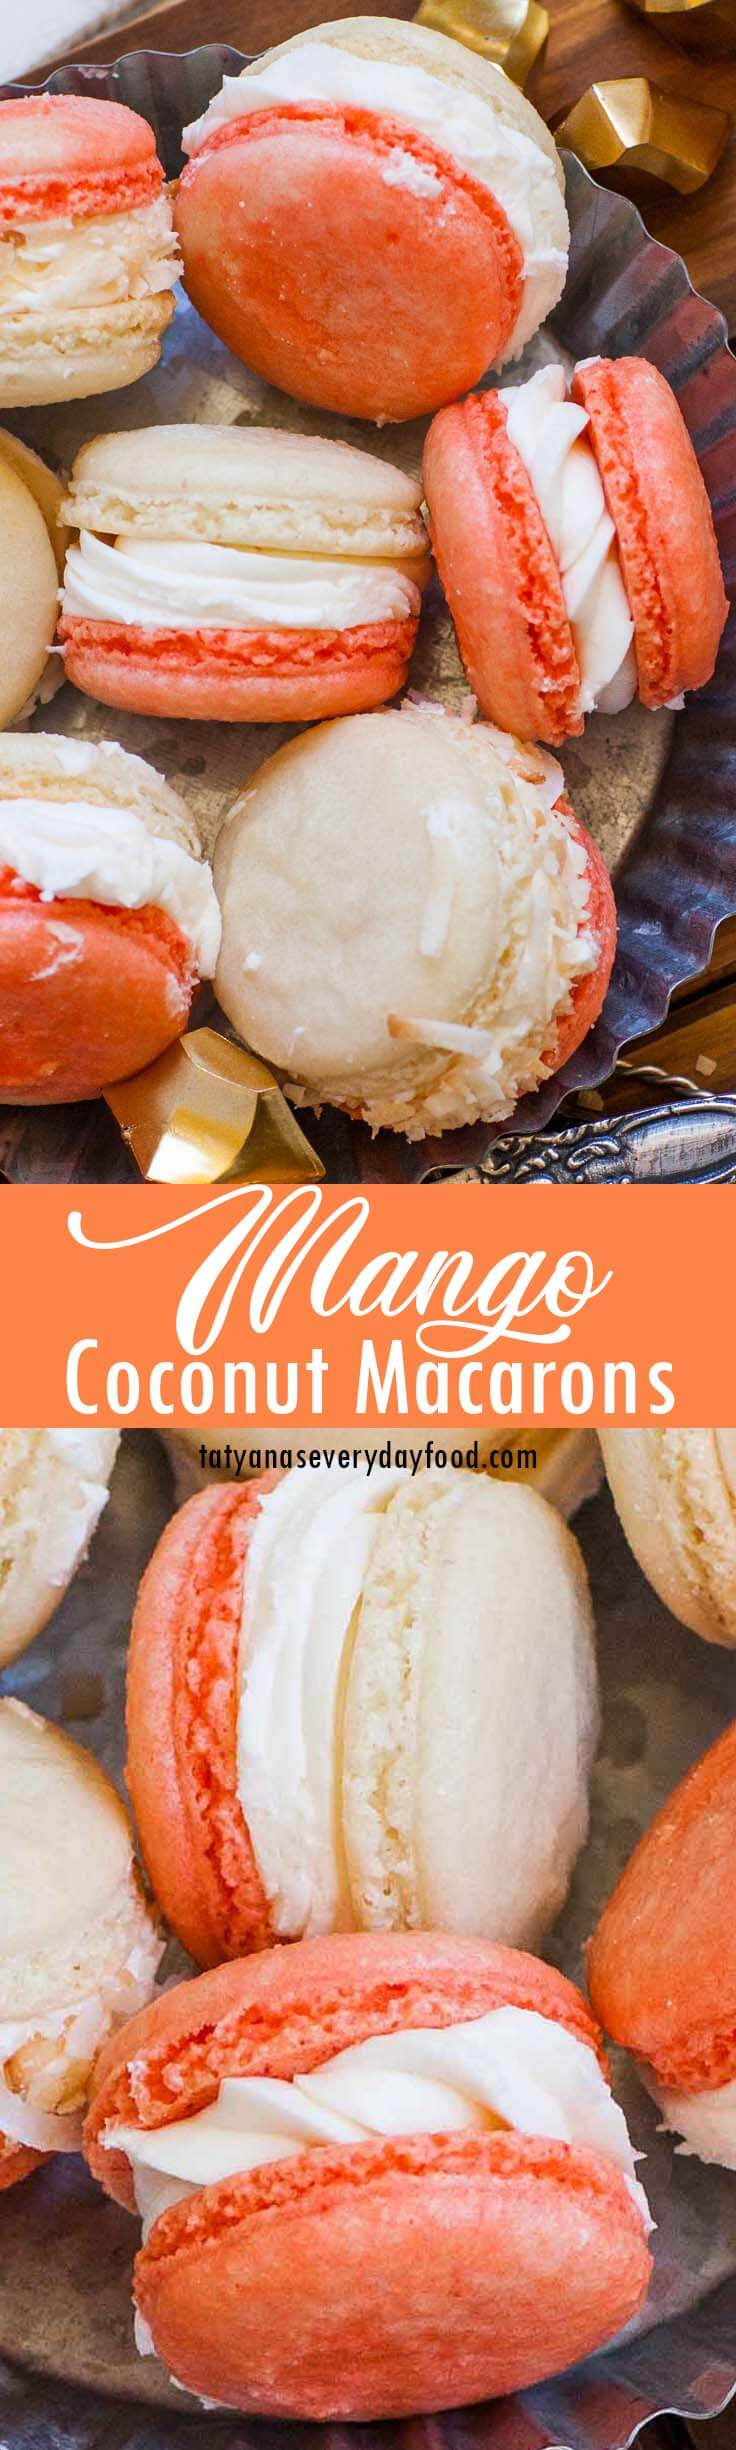 Coconut Mango Macarons video recipe 2